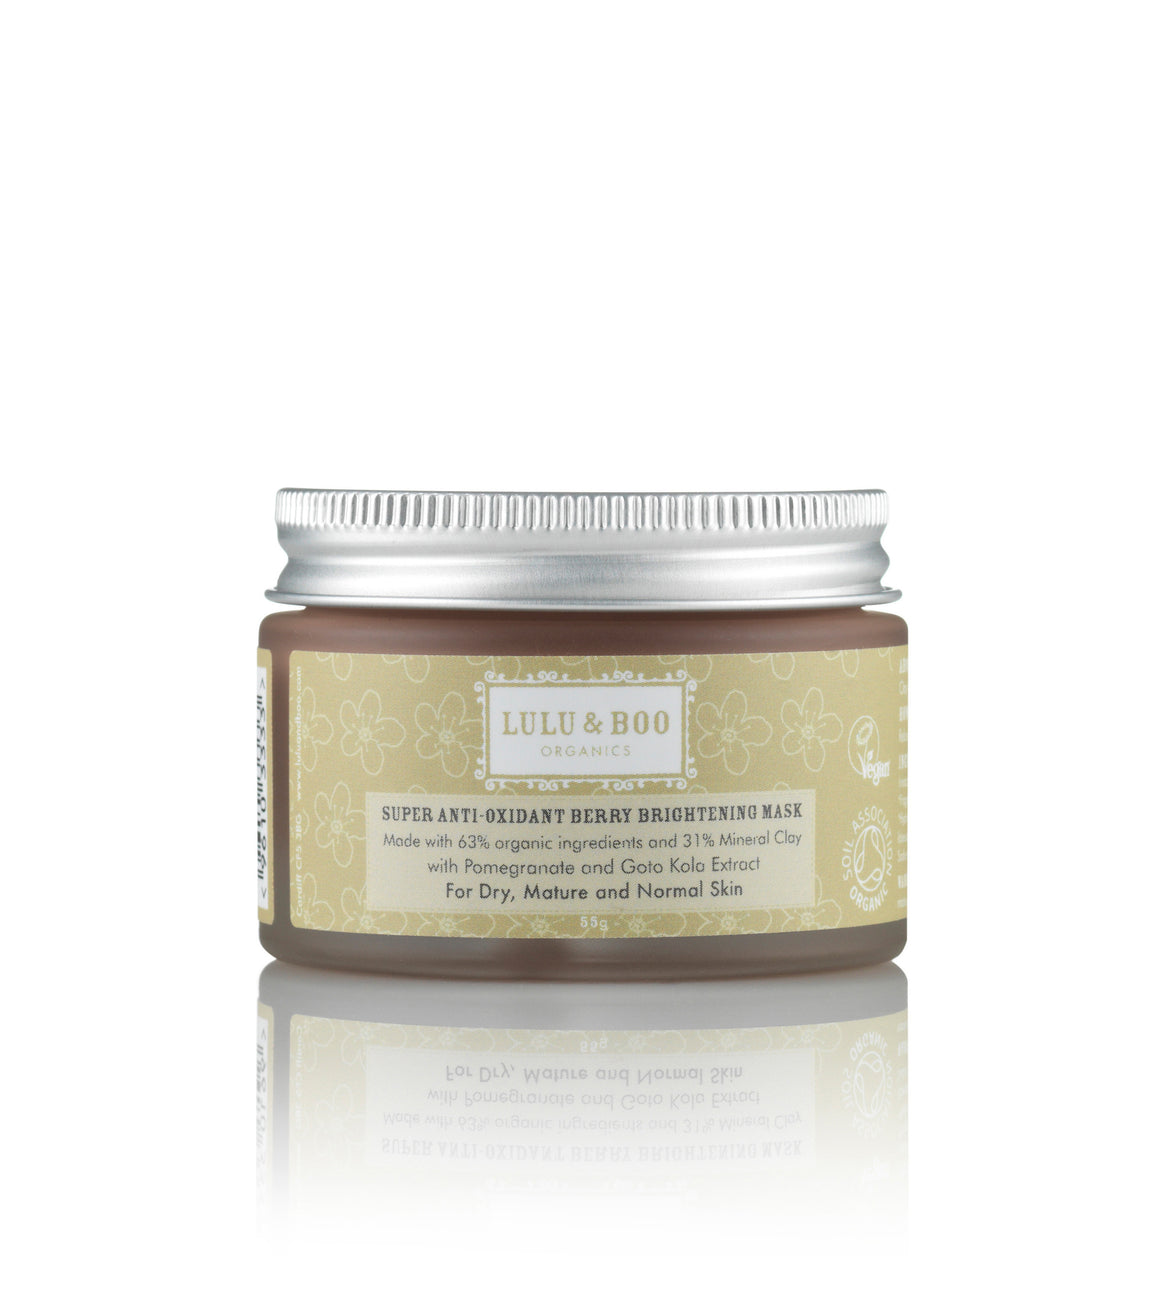 Super Anti-Oxidant Berry Brightening Mask - Lulu & Boo Organics